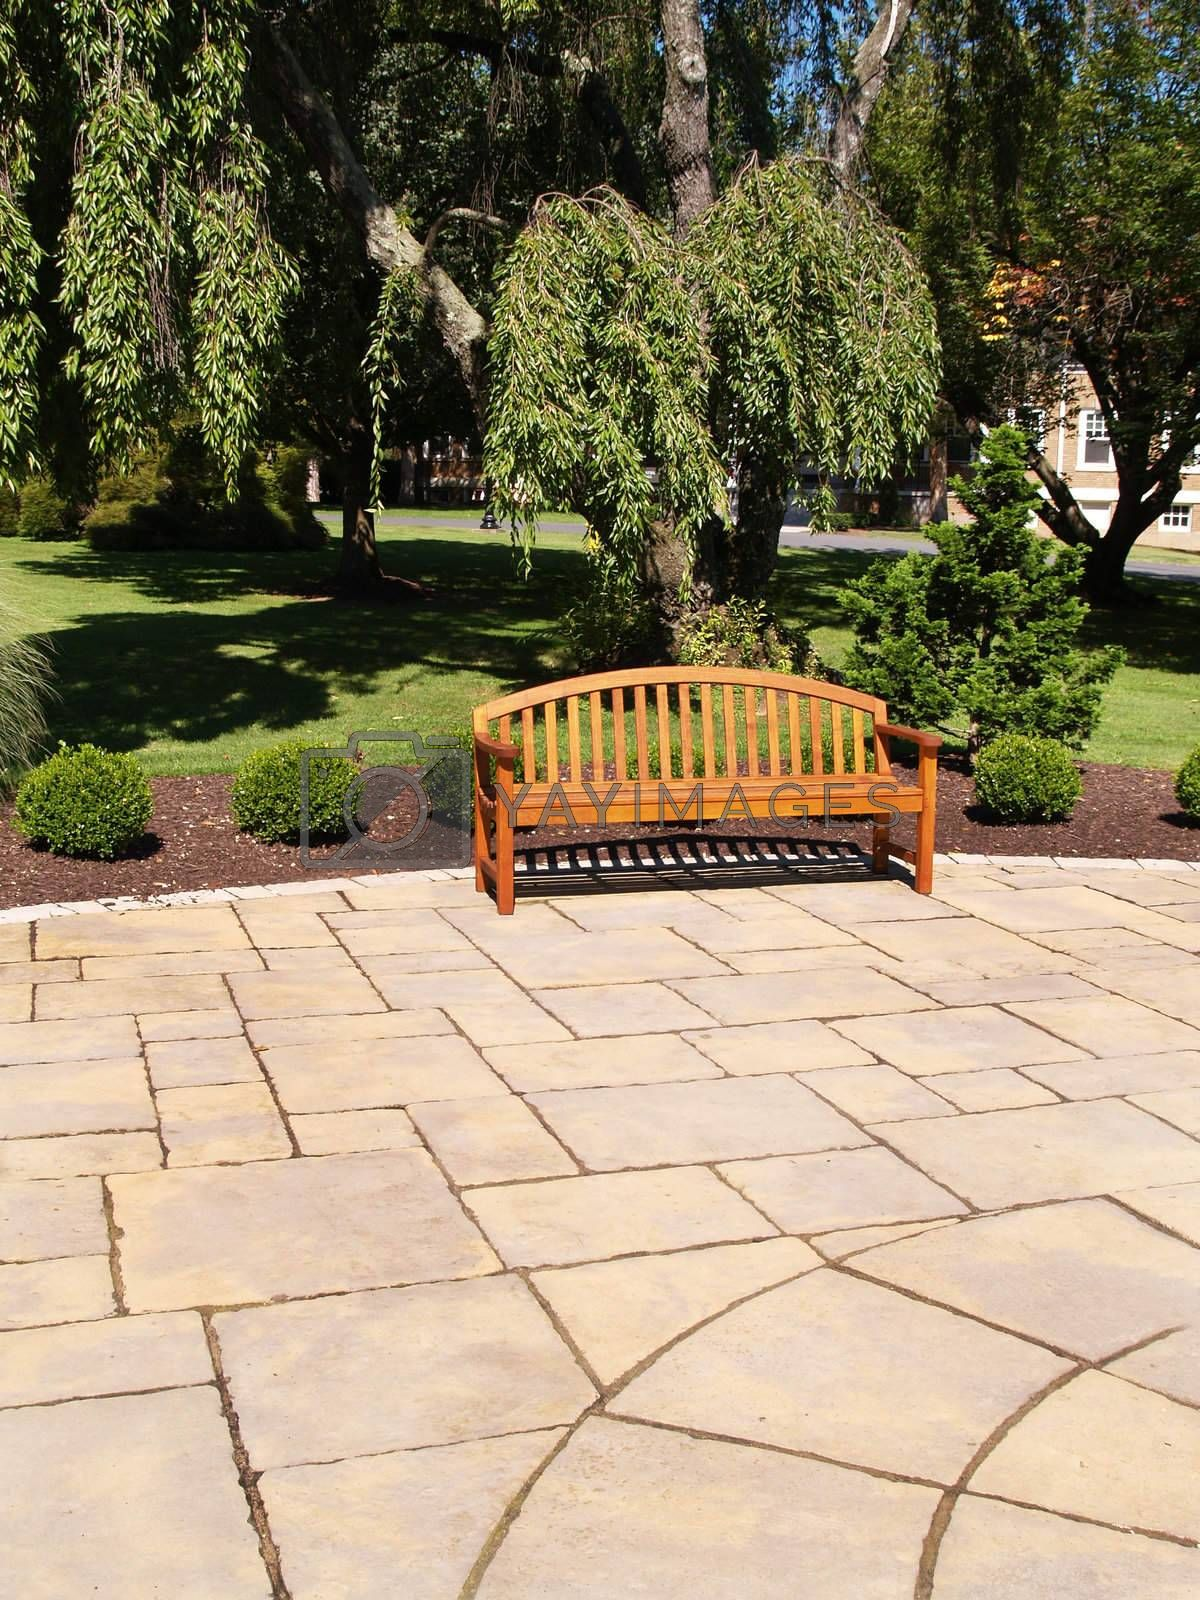 Royalty free image of one wood bench by cfarmer